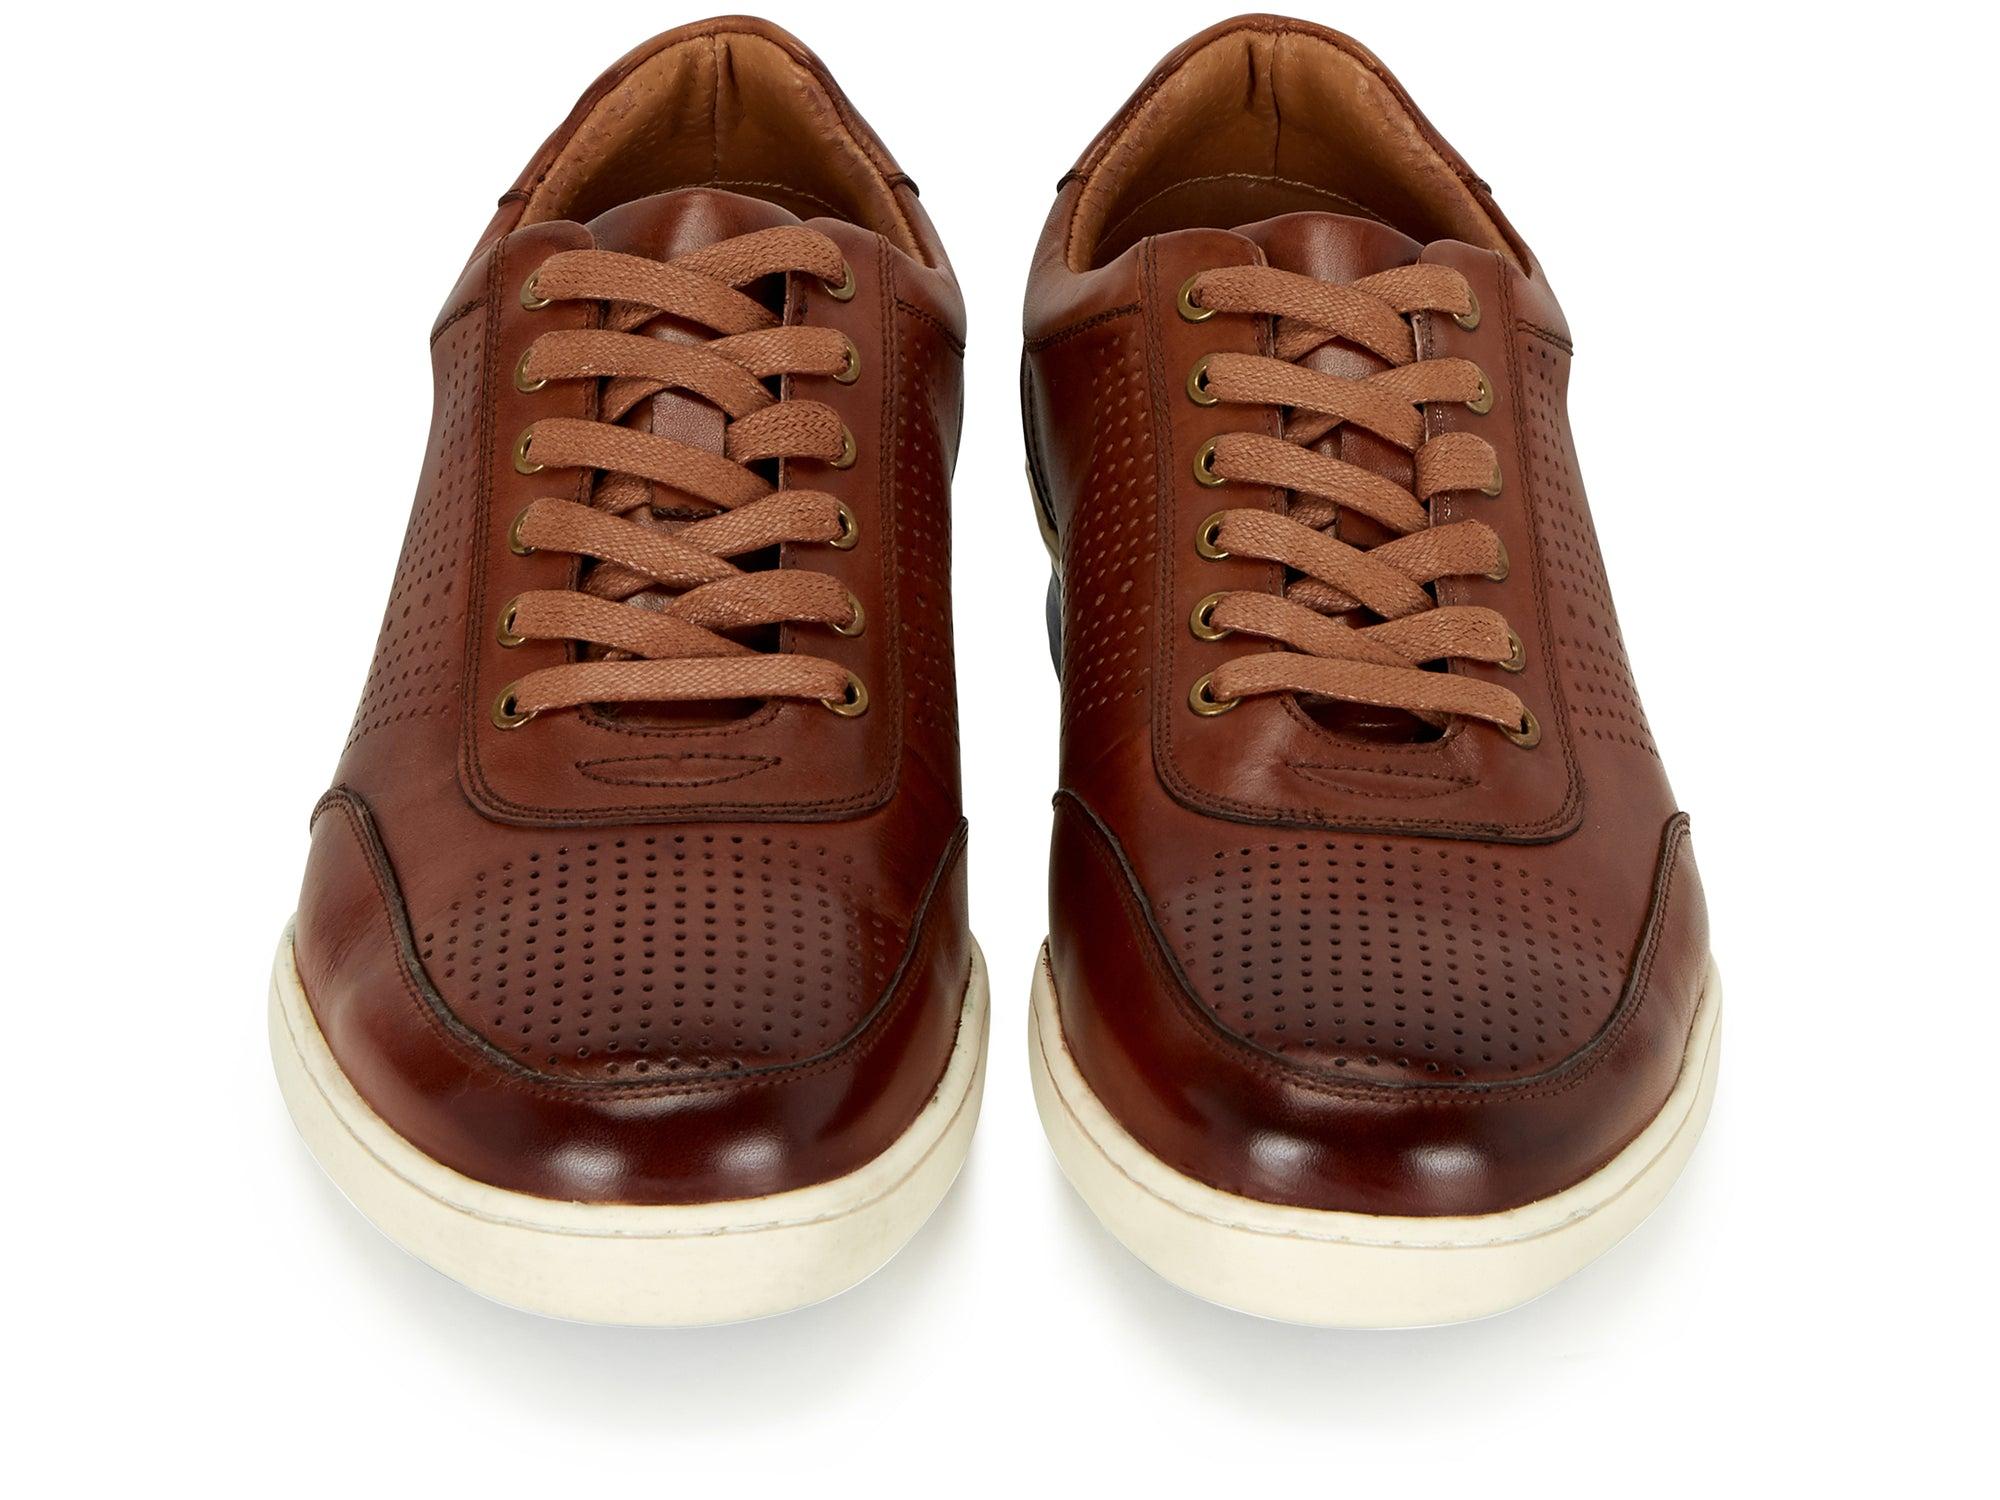 Quinton Tan Shoe